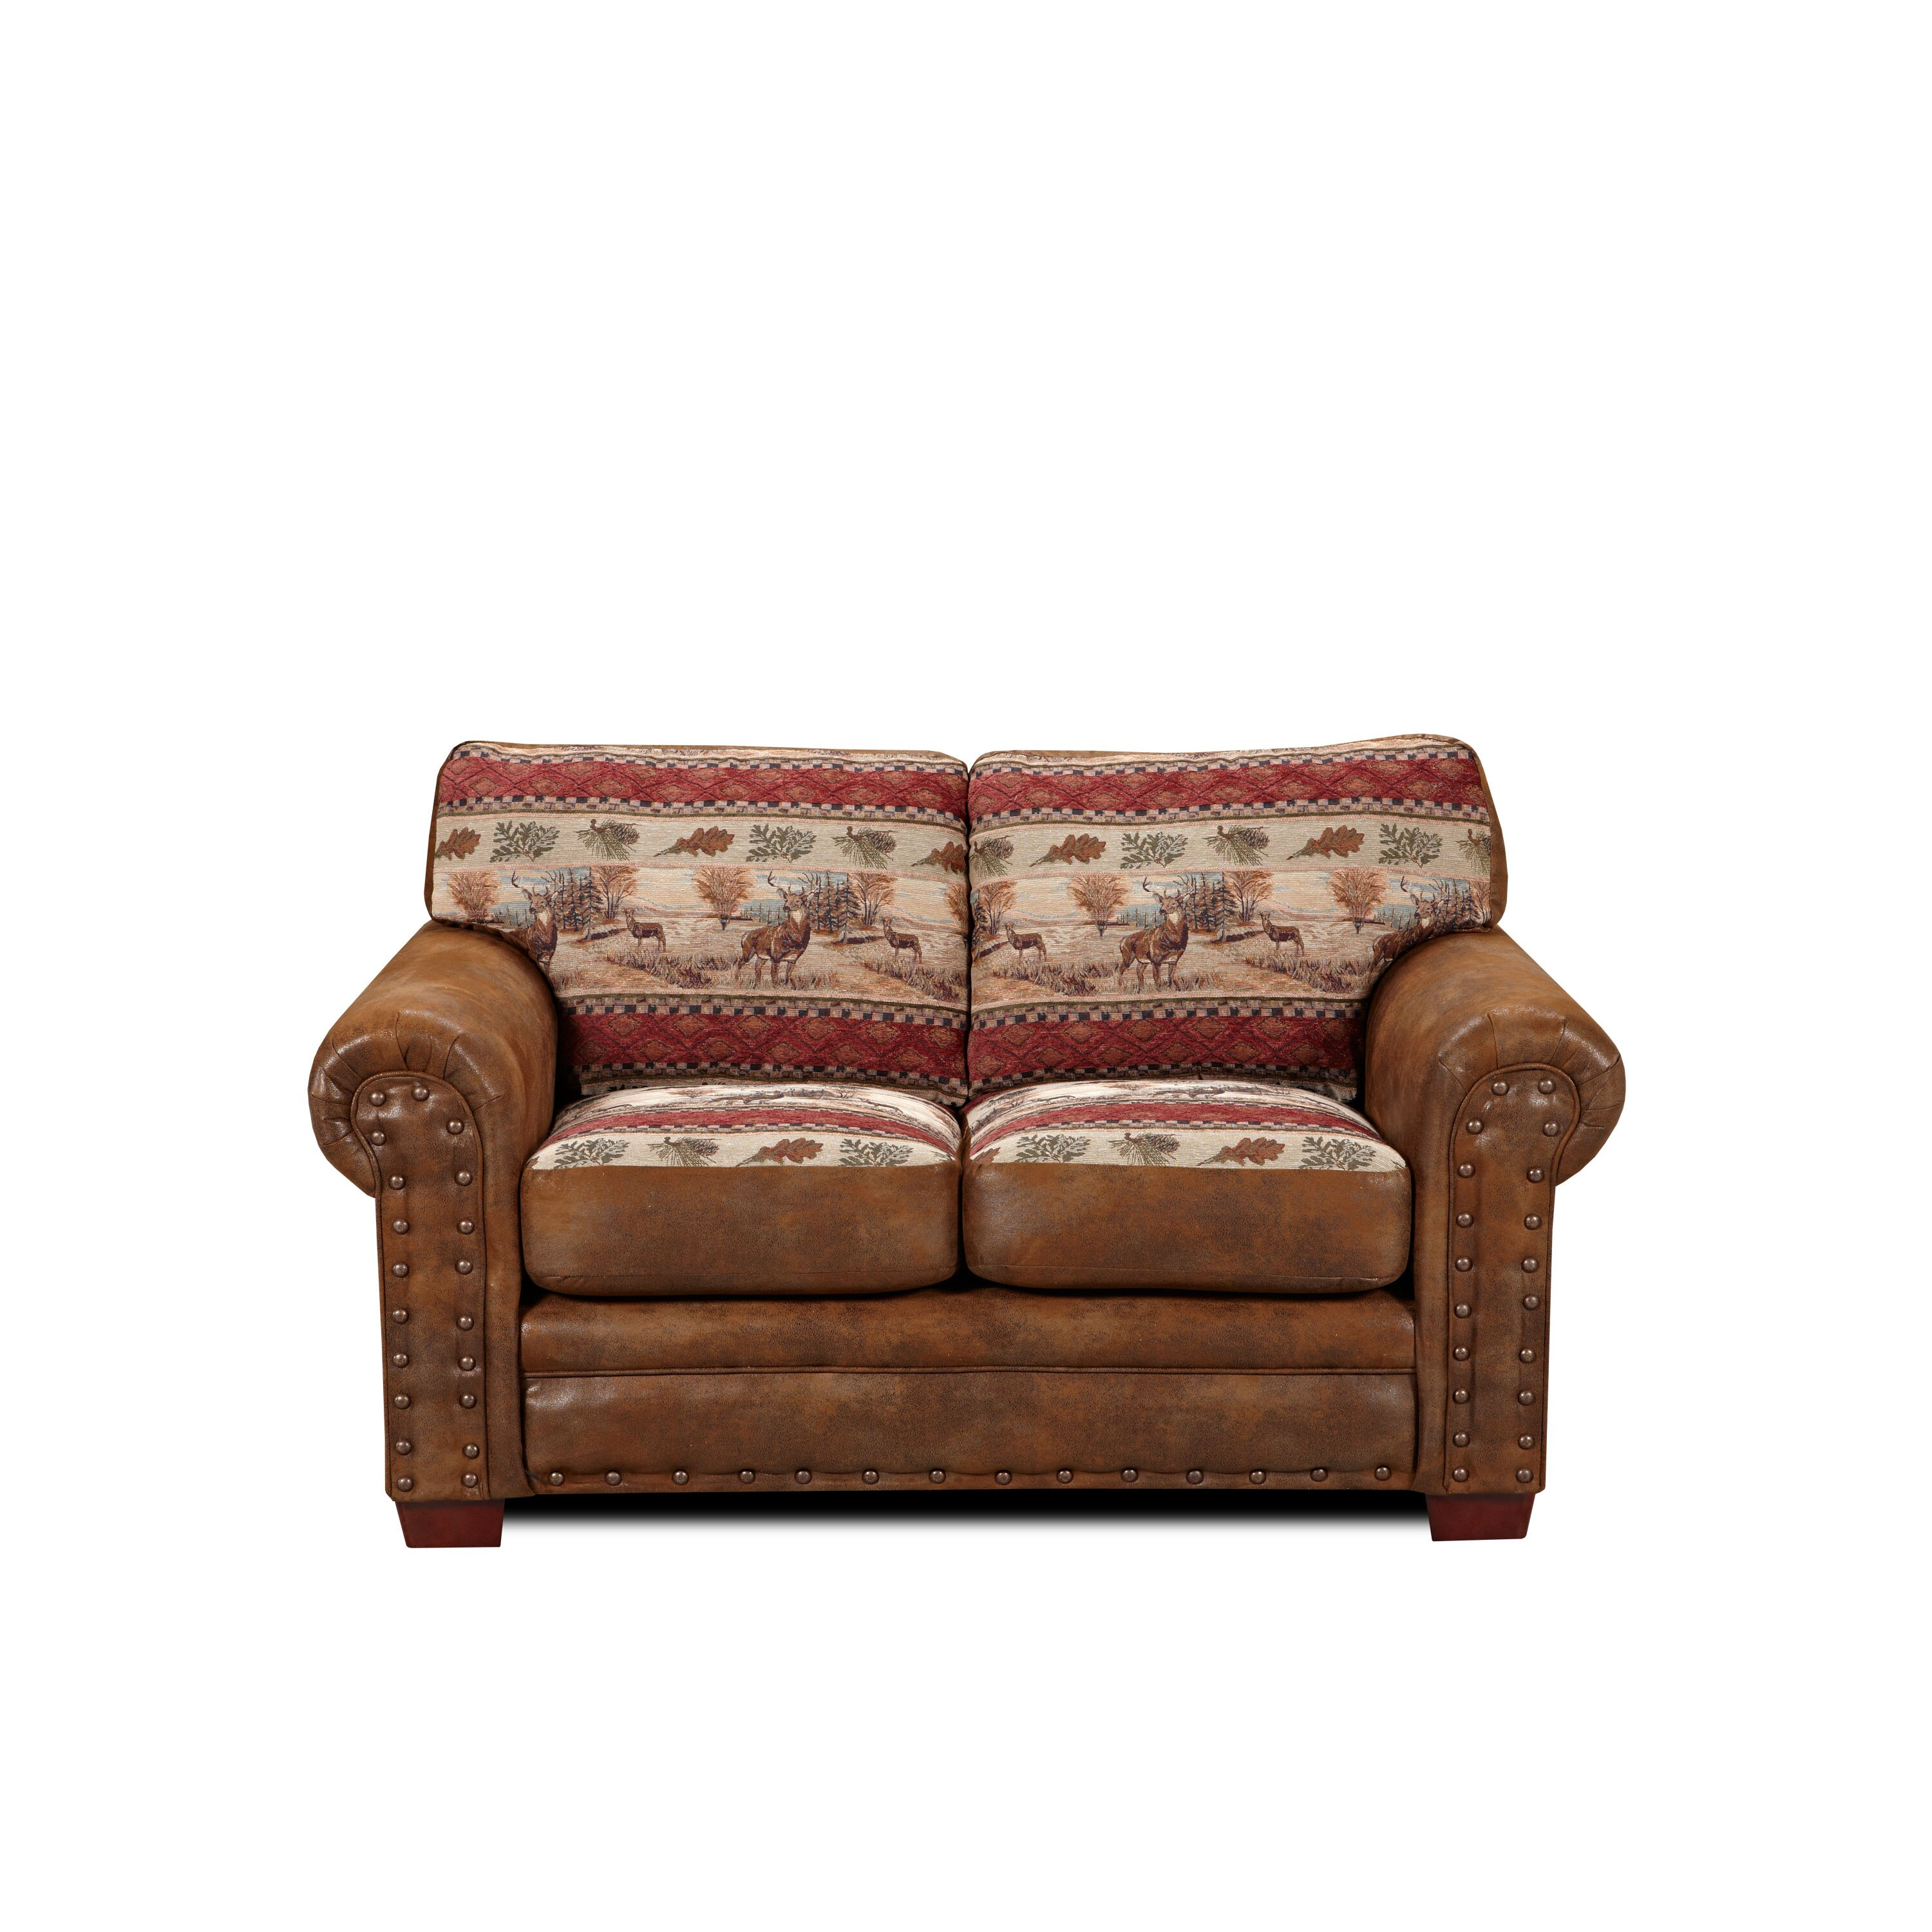 Living Room Sets American Furniture american furniture living room sets american furniture bentley